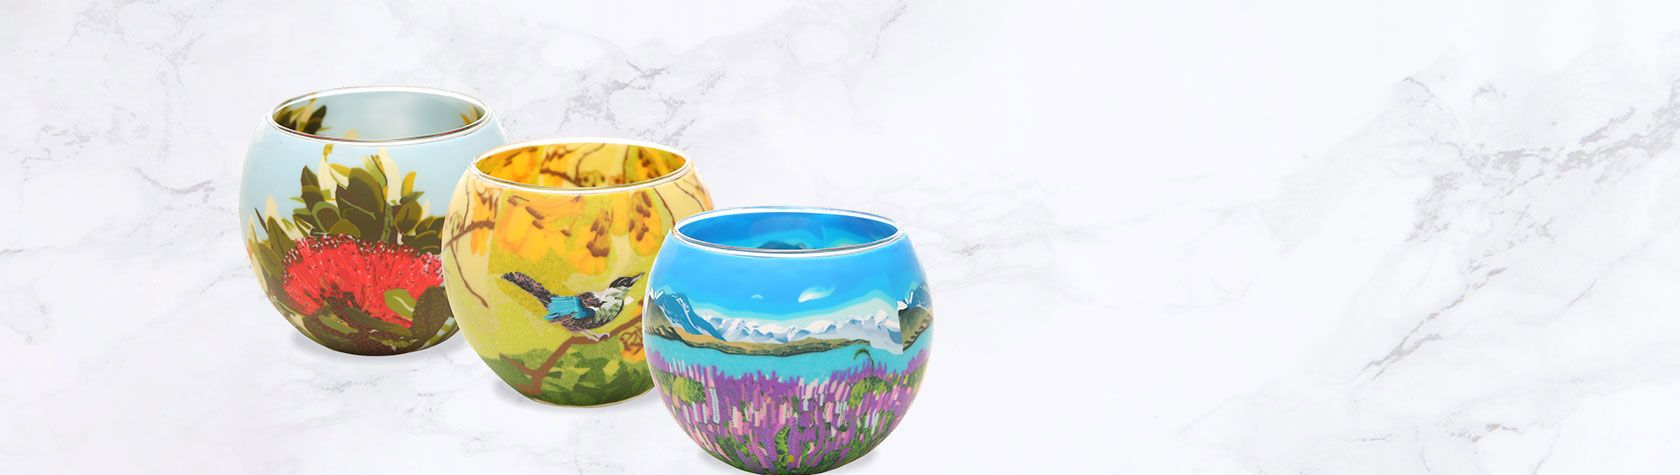 <h2>Capulet's brand new candle holder styles</h2><h3>The New Zealand Collection</h3><p>The best souvenir from NZ this Christmas</p><button>Shop Now</button>